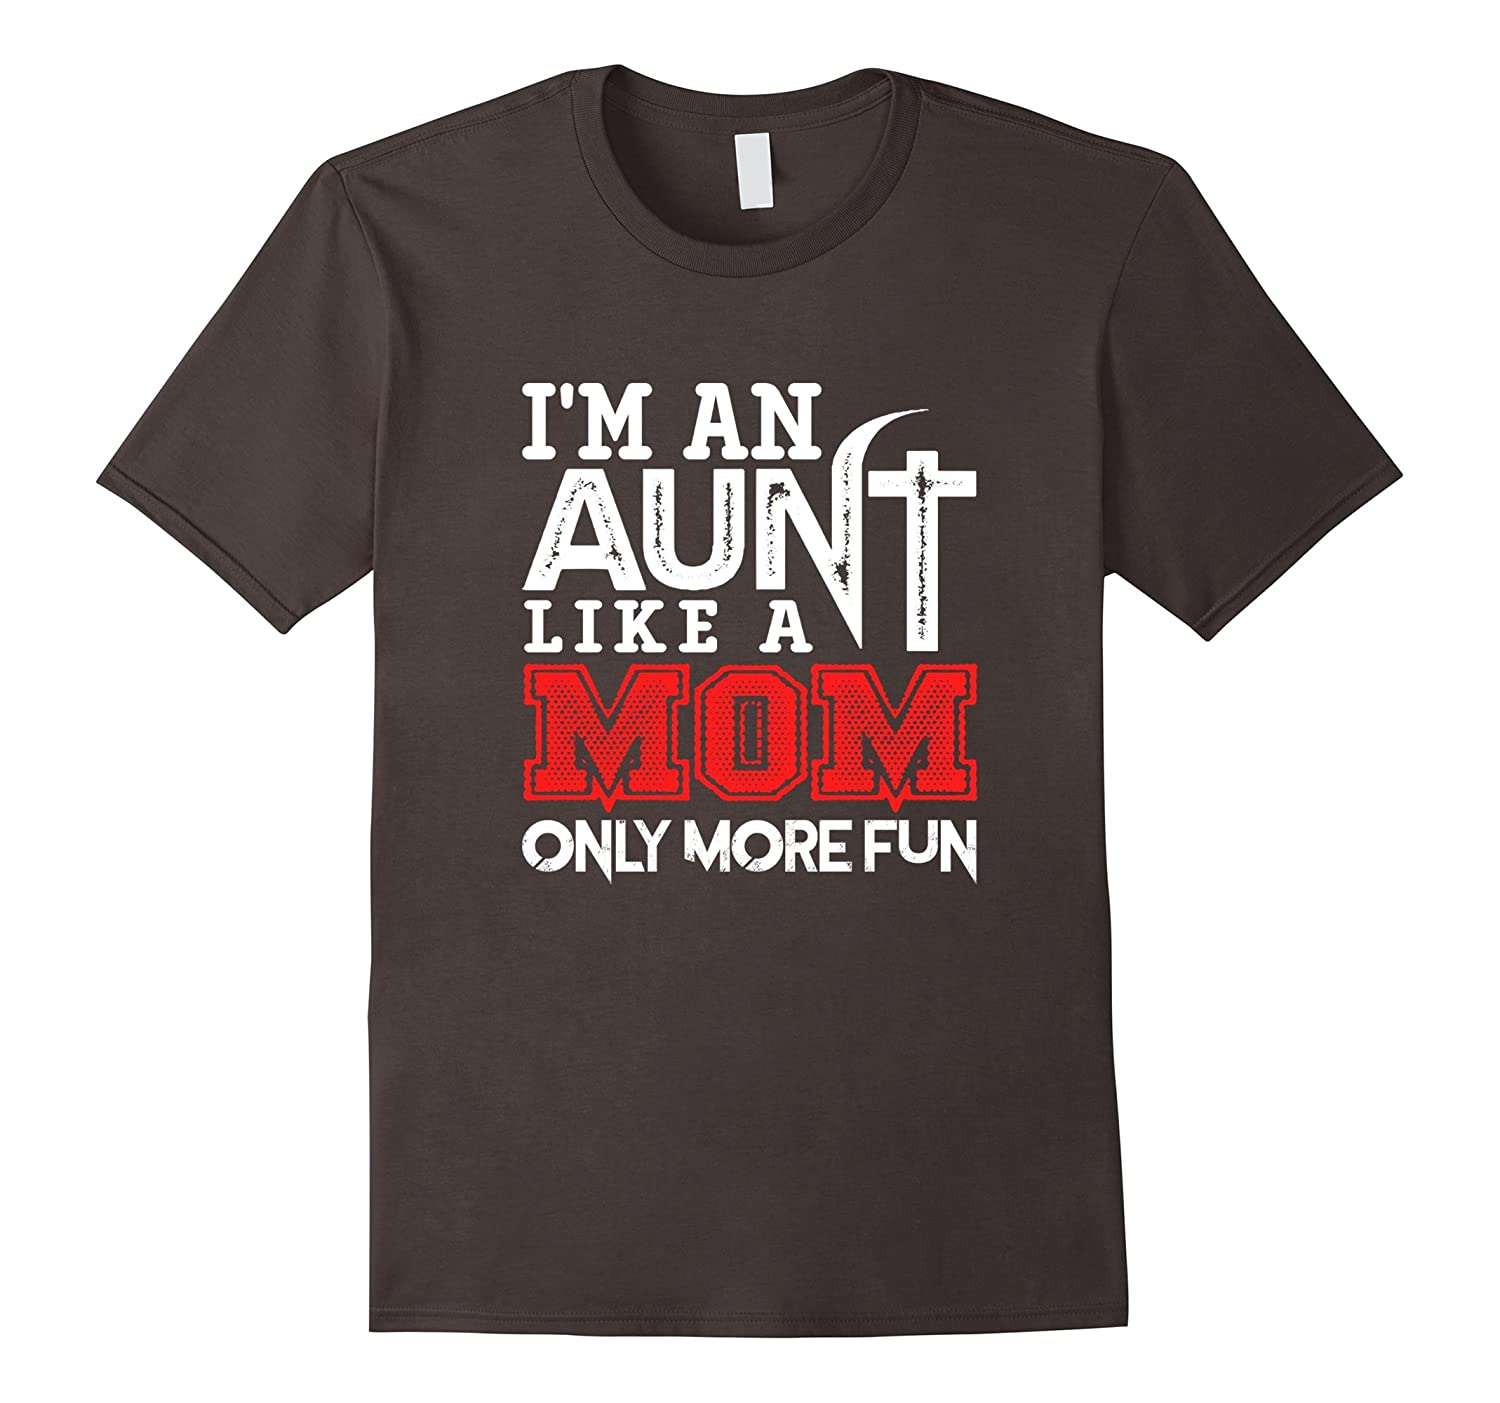 I'm an aunt like a mom only more fun shirts-CL